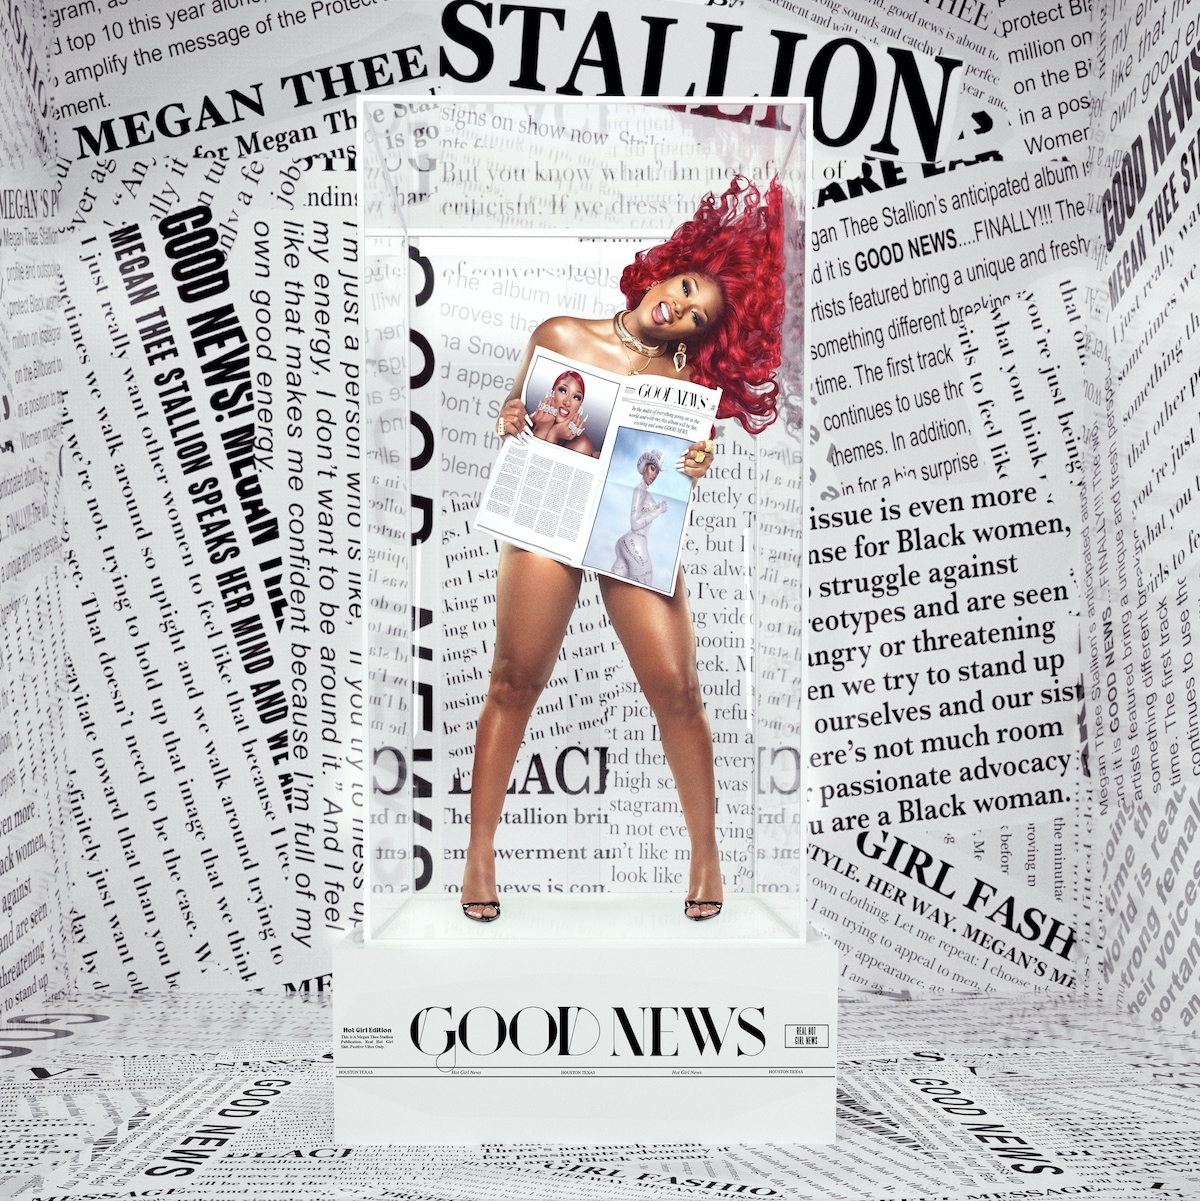 megan thee stallion good news debut album cover artwork